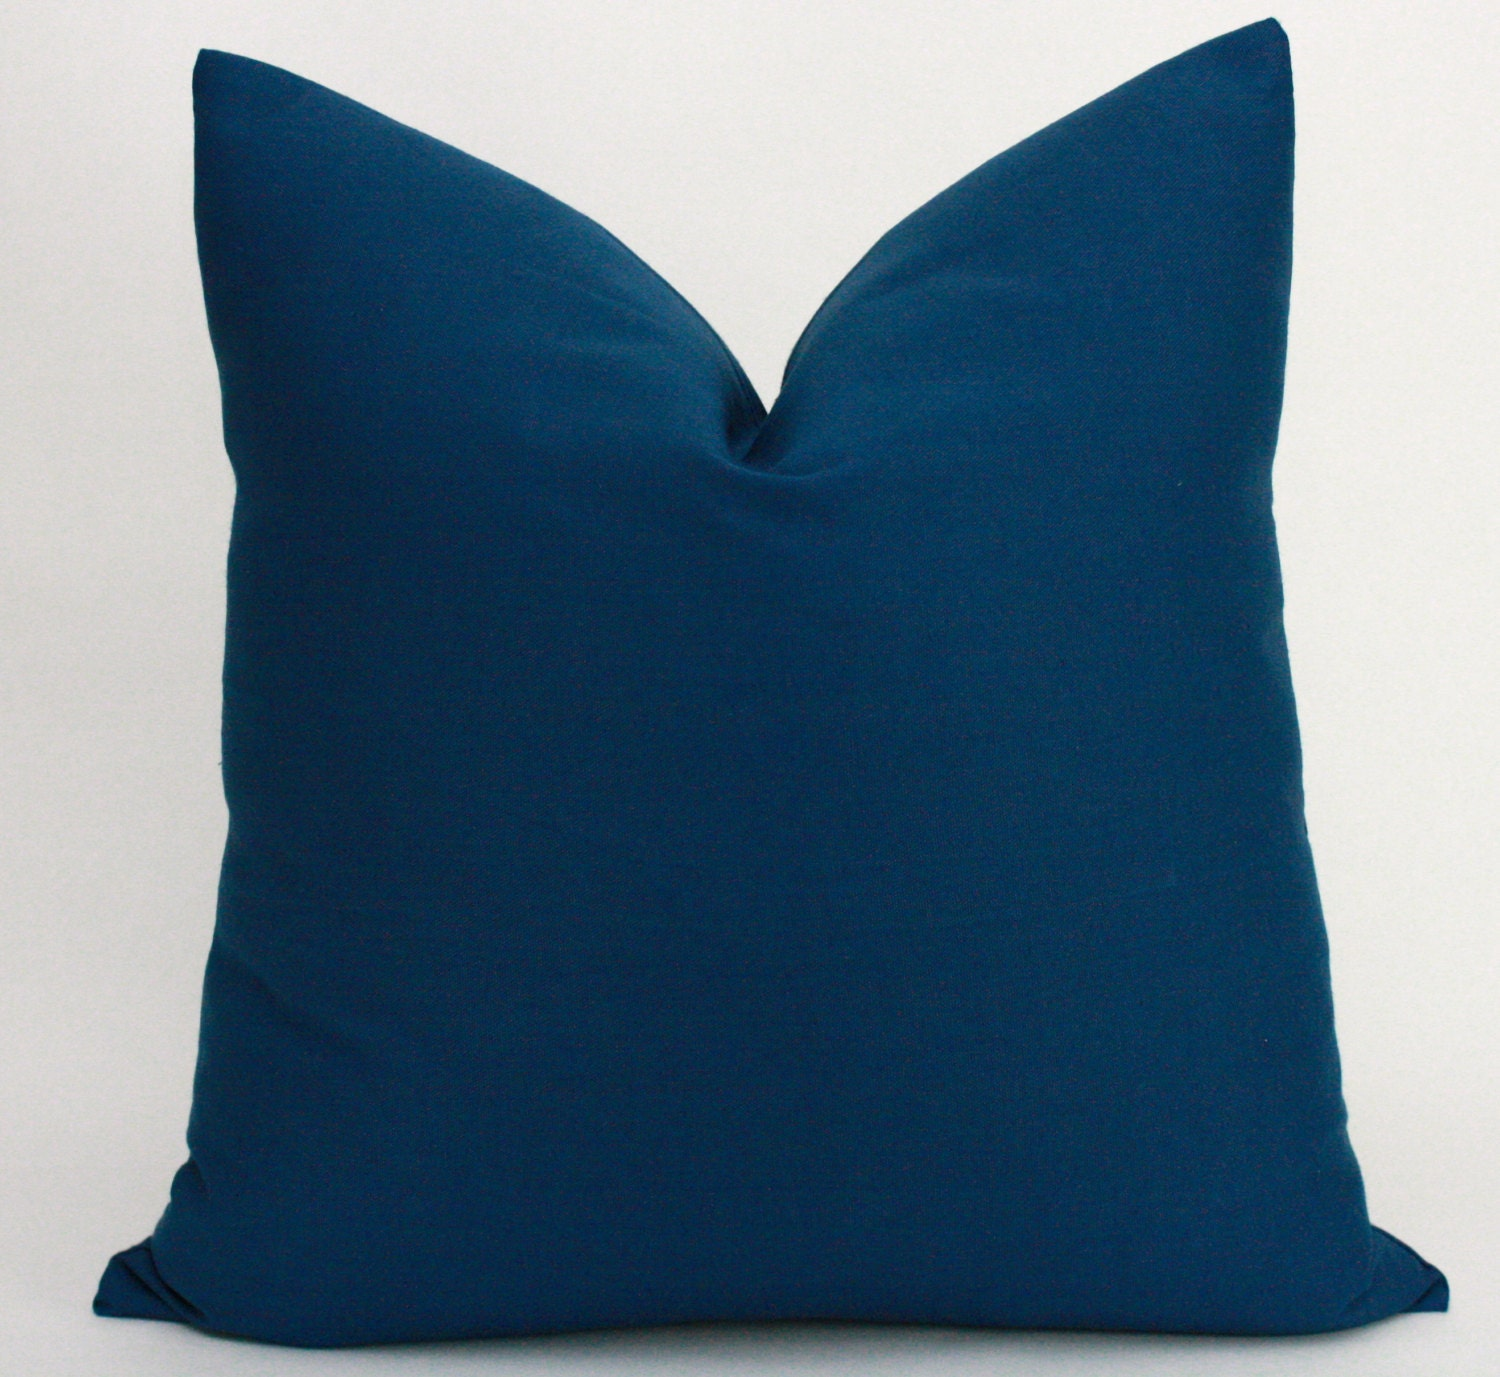 Indigo Blue Pillow Cover 20 x 20 inches Decorative by StyleItUp